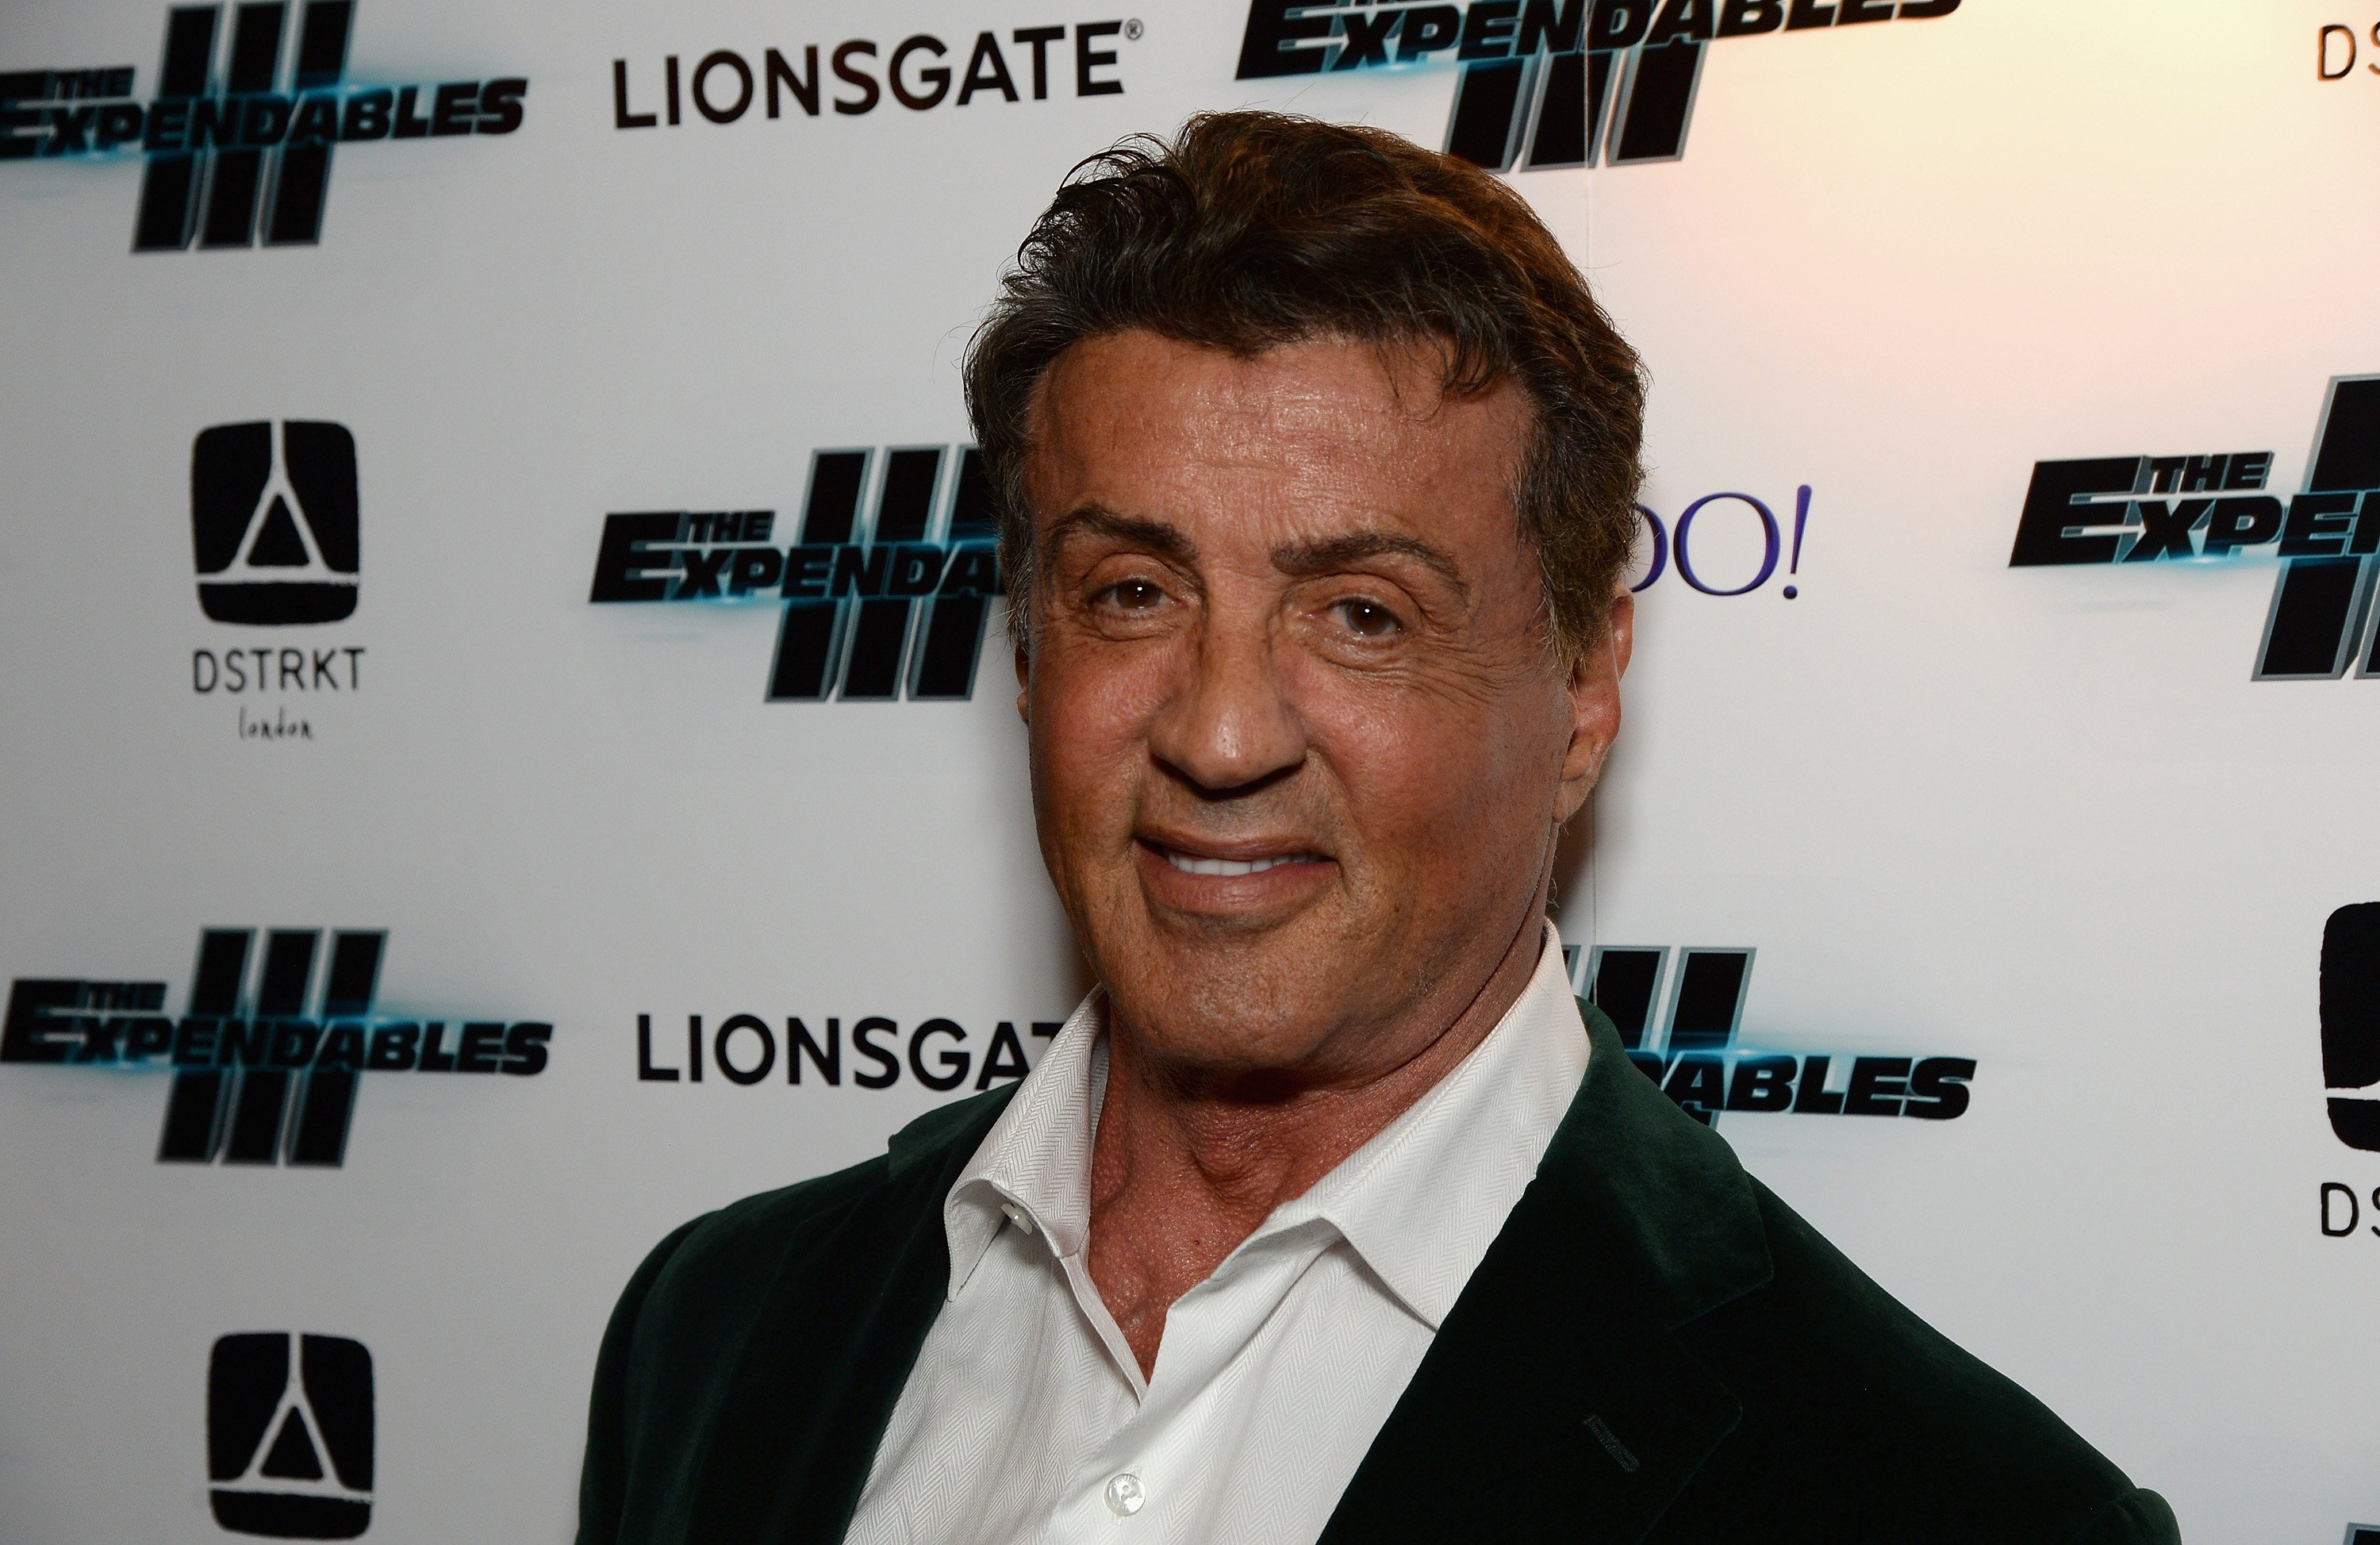 """Legendary actor Sylvester Stallone attends the 2014 premiere night of the movie """"Expendables III"""" in London. 